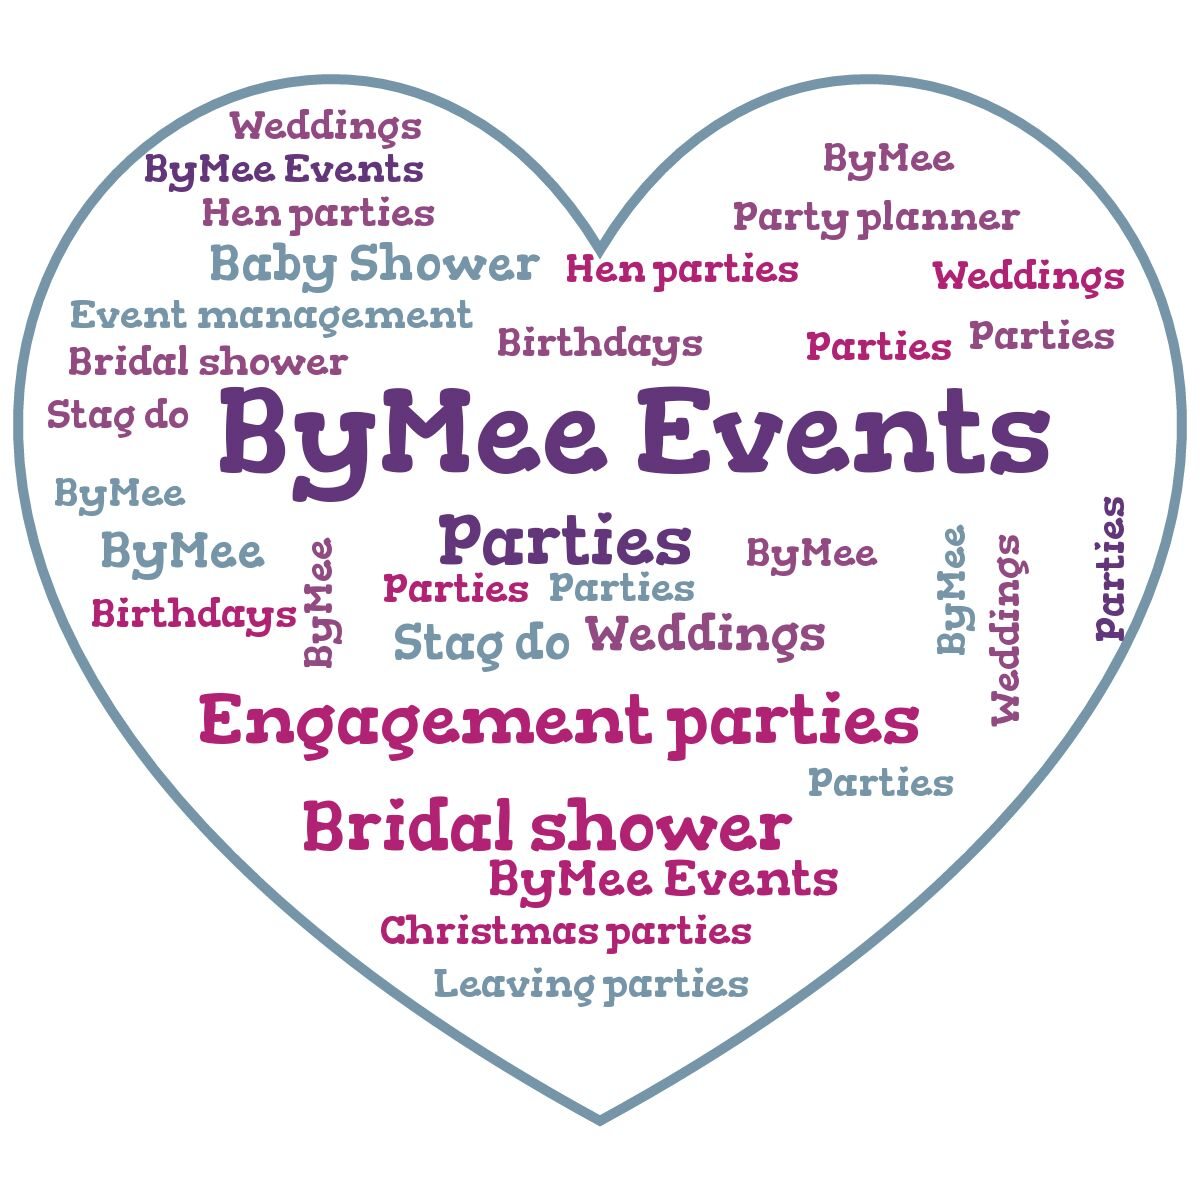 ByMee Events - London, London SW15 5HP - 07704 502851 | ShowMeLocal.com